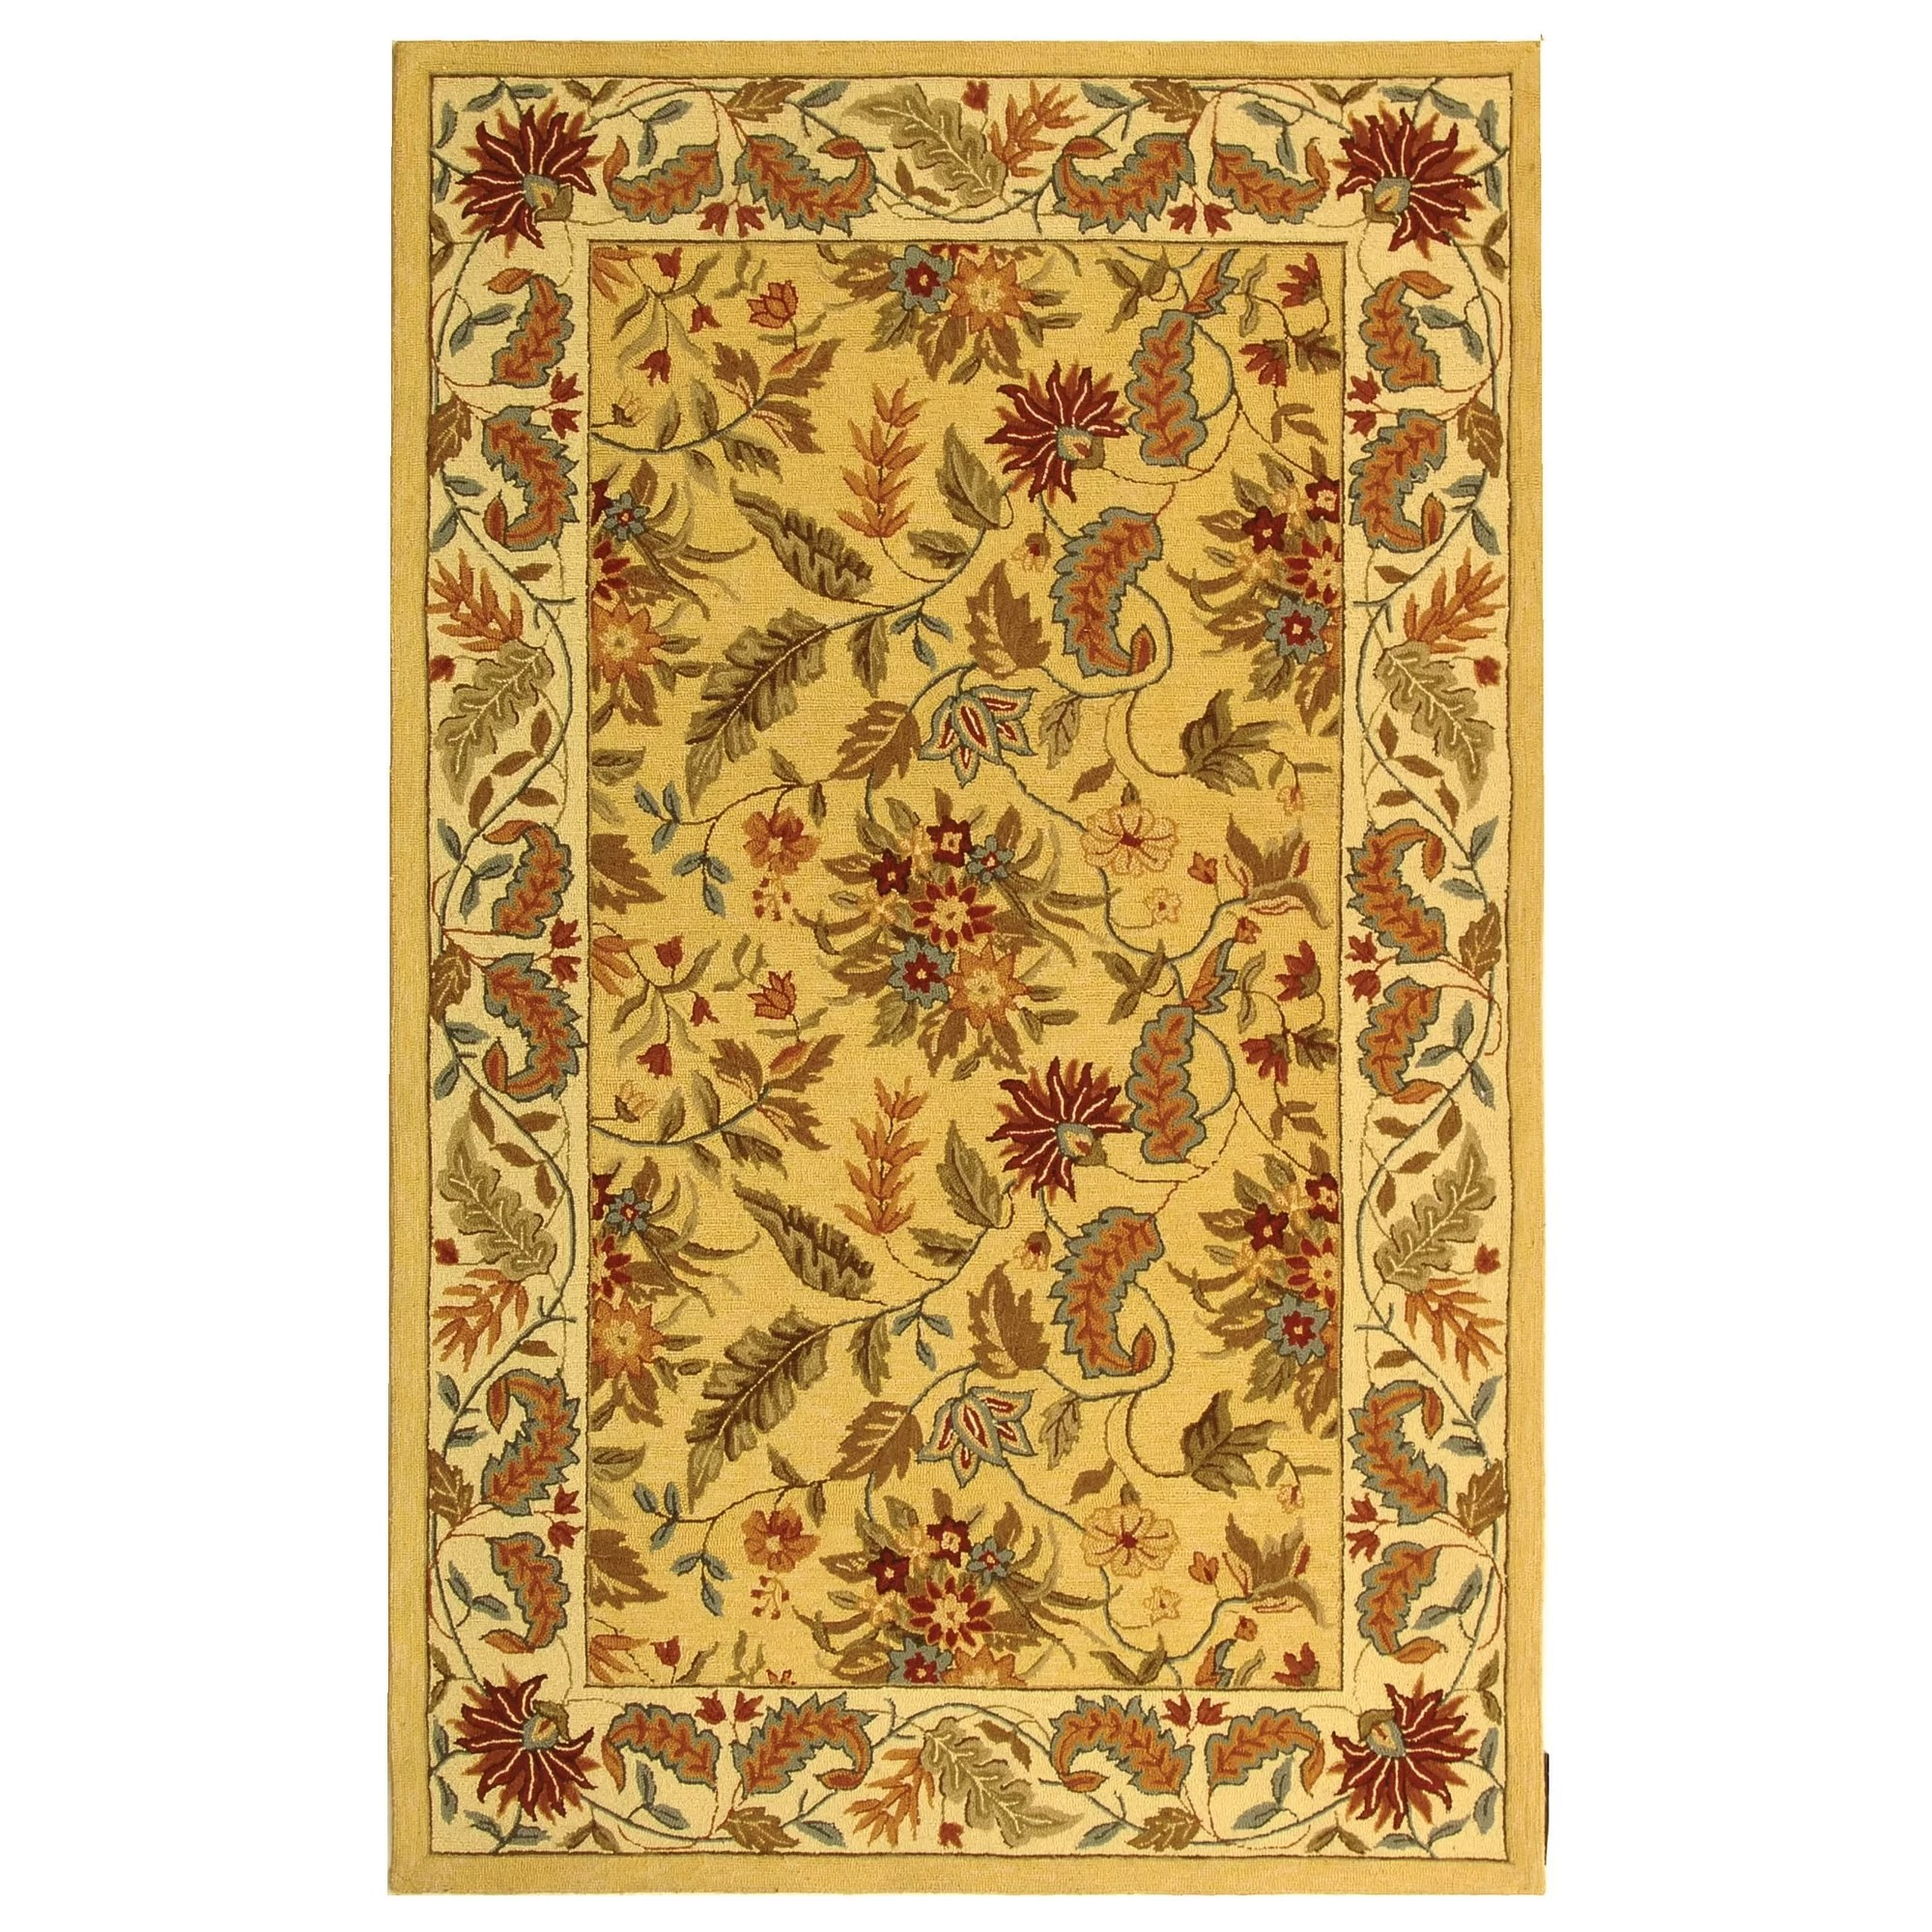 chicken kitchen rugs commercial stainless steel sink safavieh chelsea beige & red missy floral area rug ...